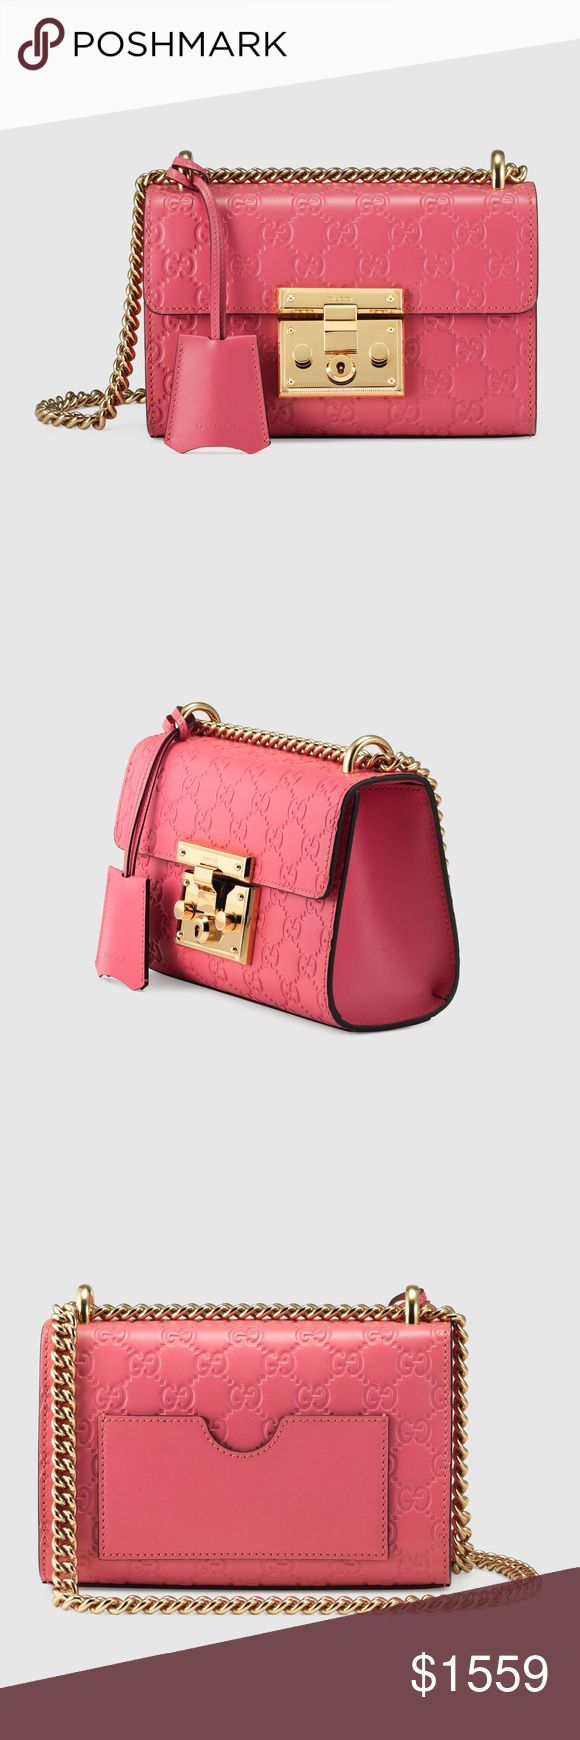 NEW Gucci Padlock Bag Pink GG Signature Embossed L A small structured Gucci Signature leather bag with a key lock closure pulled from the archives, the key is placed in a leather key case that loops around the chain. The sliding chain strap can be worn multiple ways, changing between a shoulder and a top handle bag. Made in heat debossed Gucci Signature leather resulting in a defined print with a firm texture.  Pink Gucci Signature leather Gold-toned hardware Key with leather holder Interior…